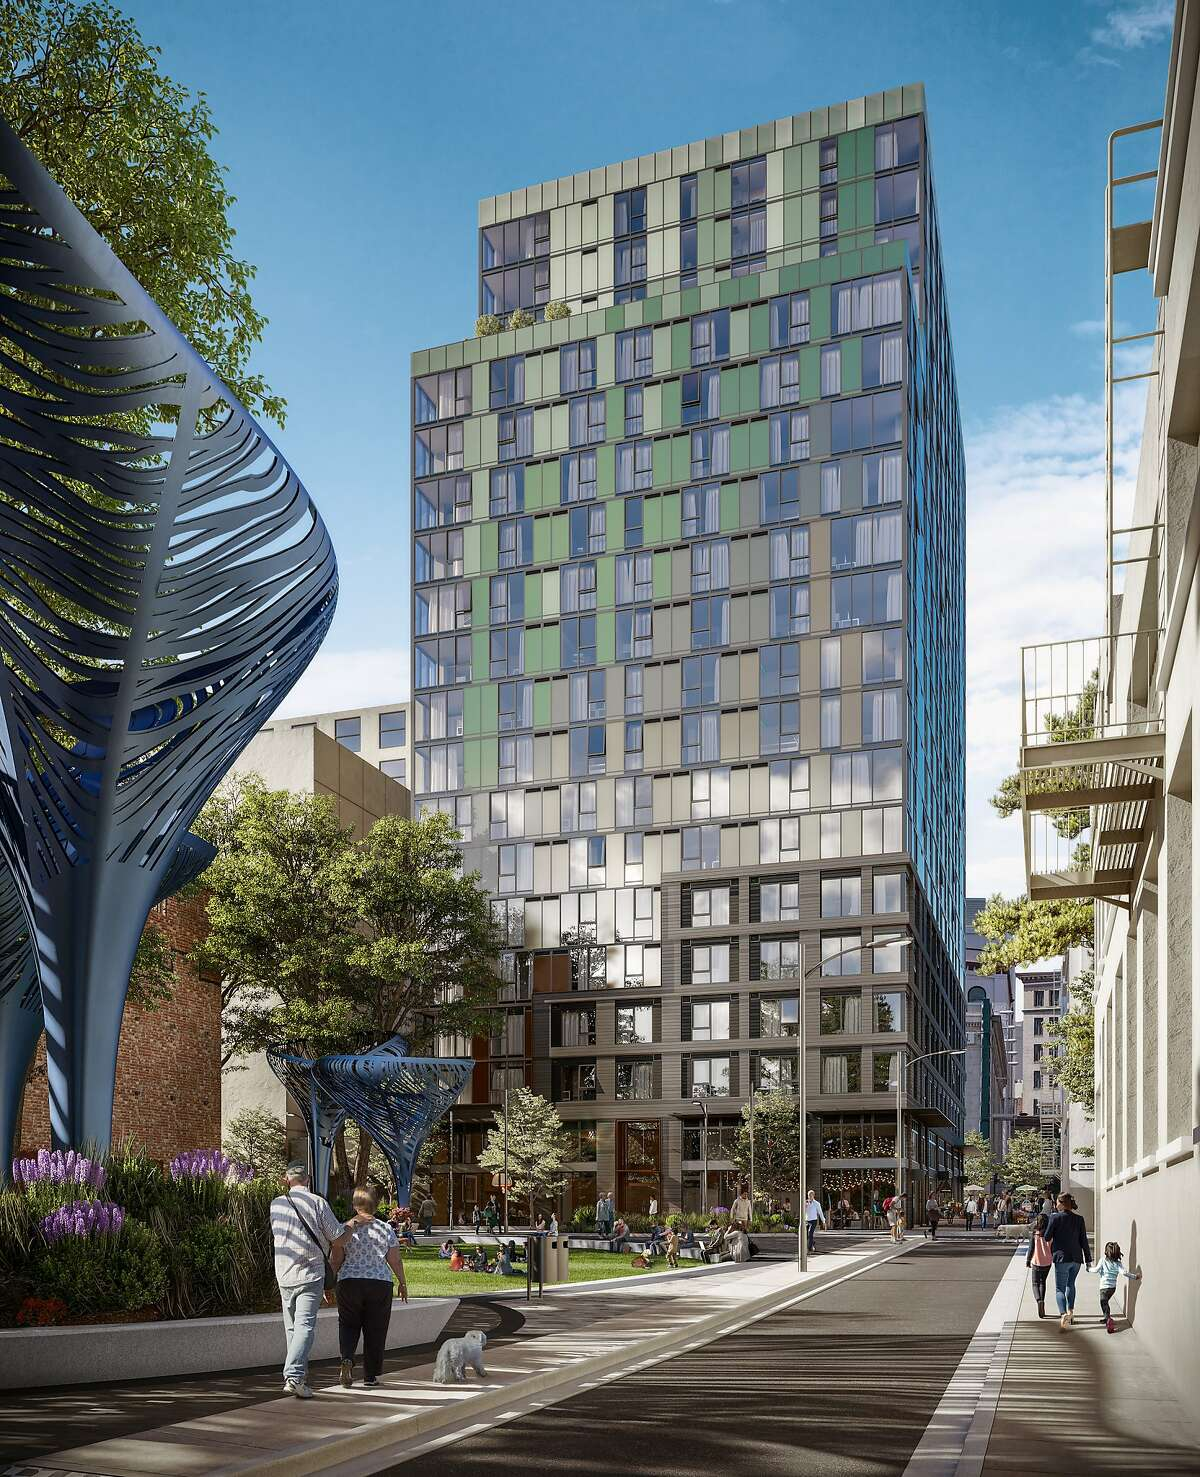 A rendering of the 434 Minna St. residential building, which is part of the 5M project in SoMa.